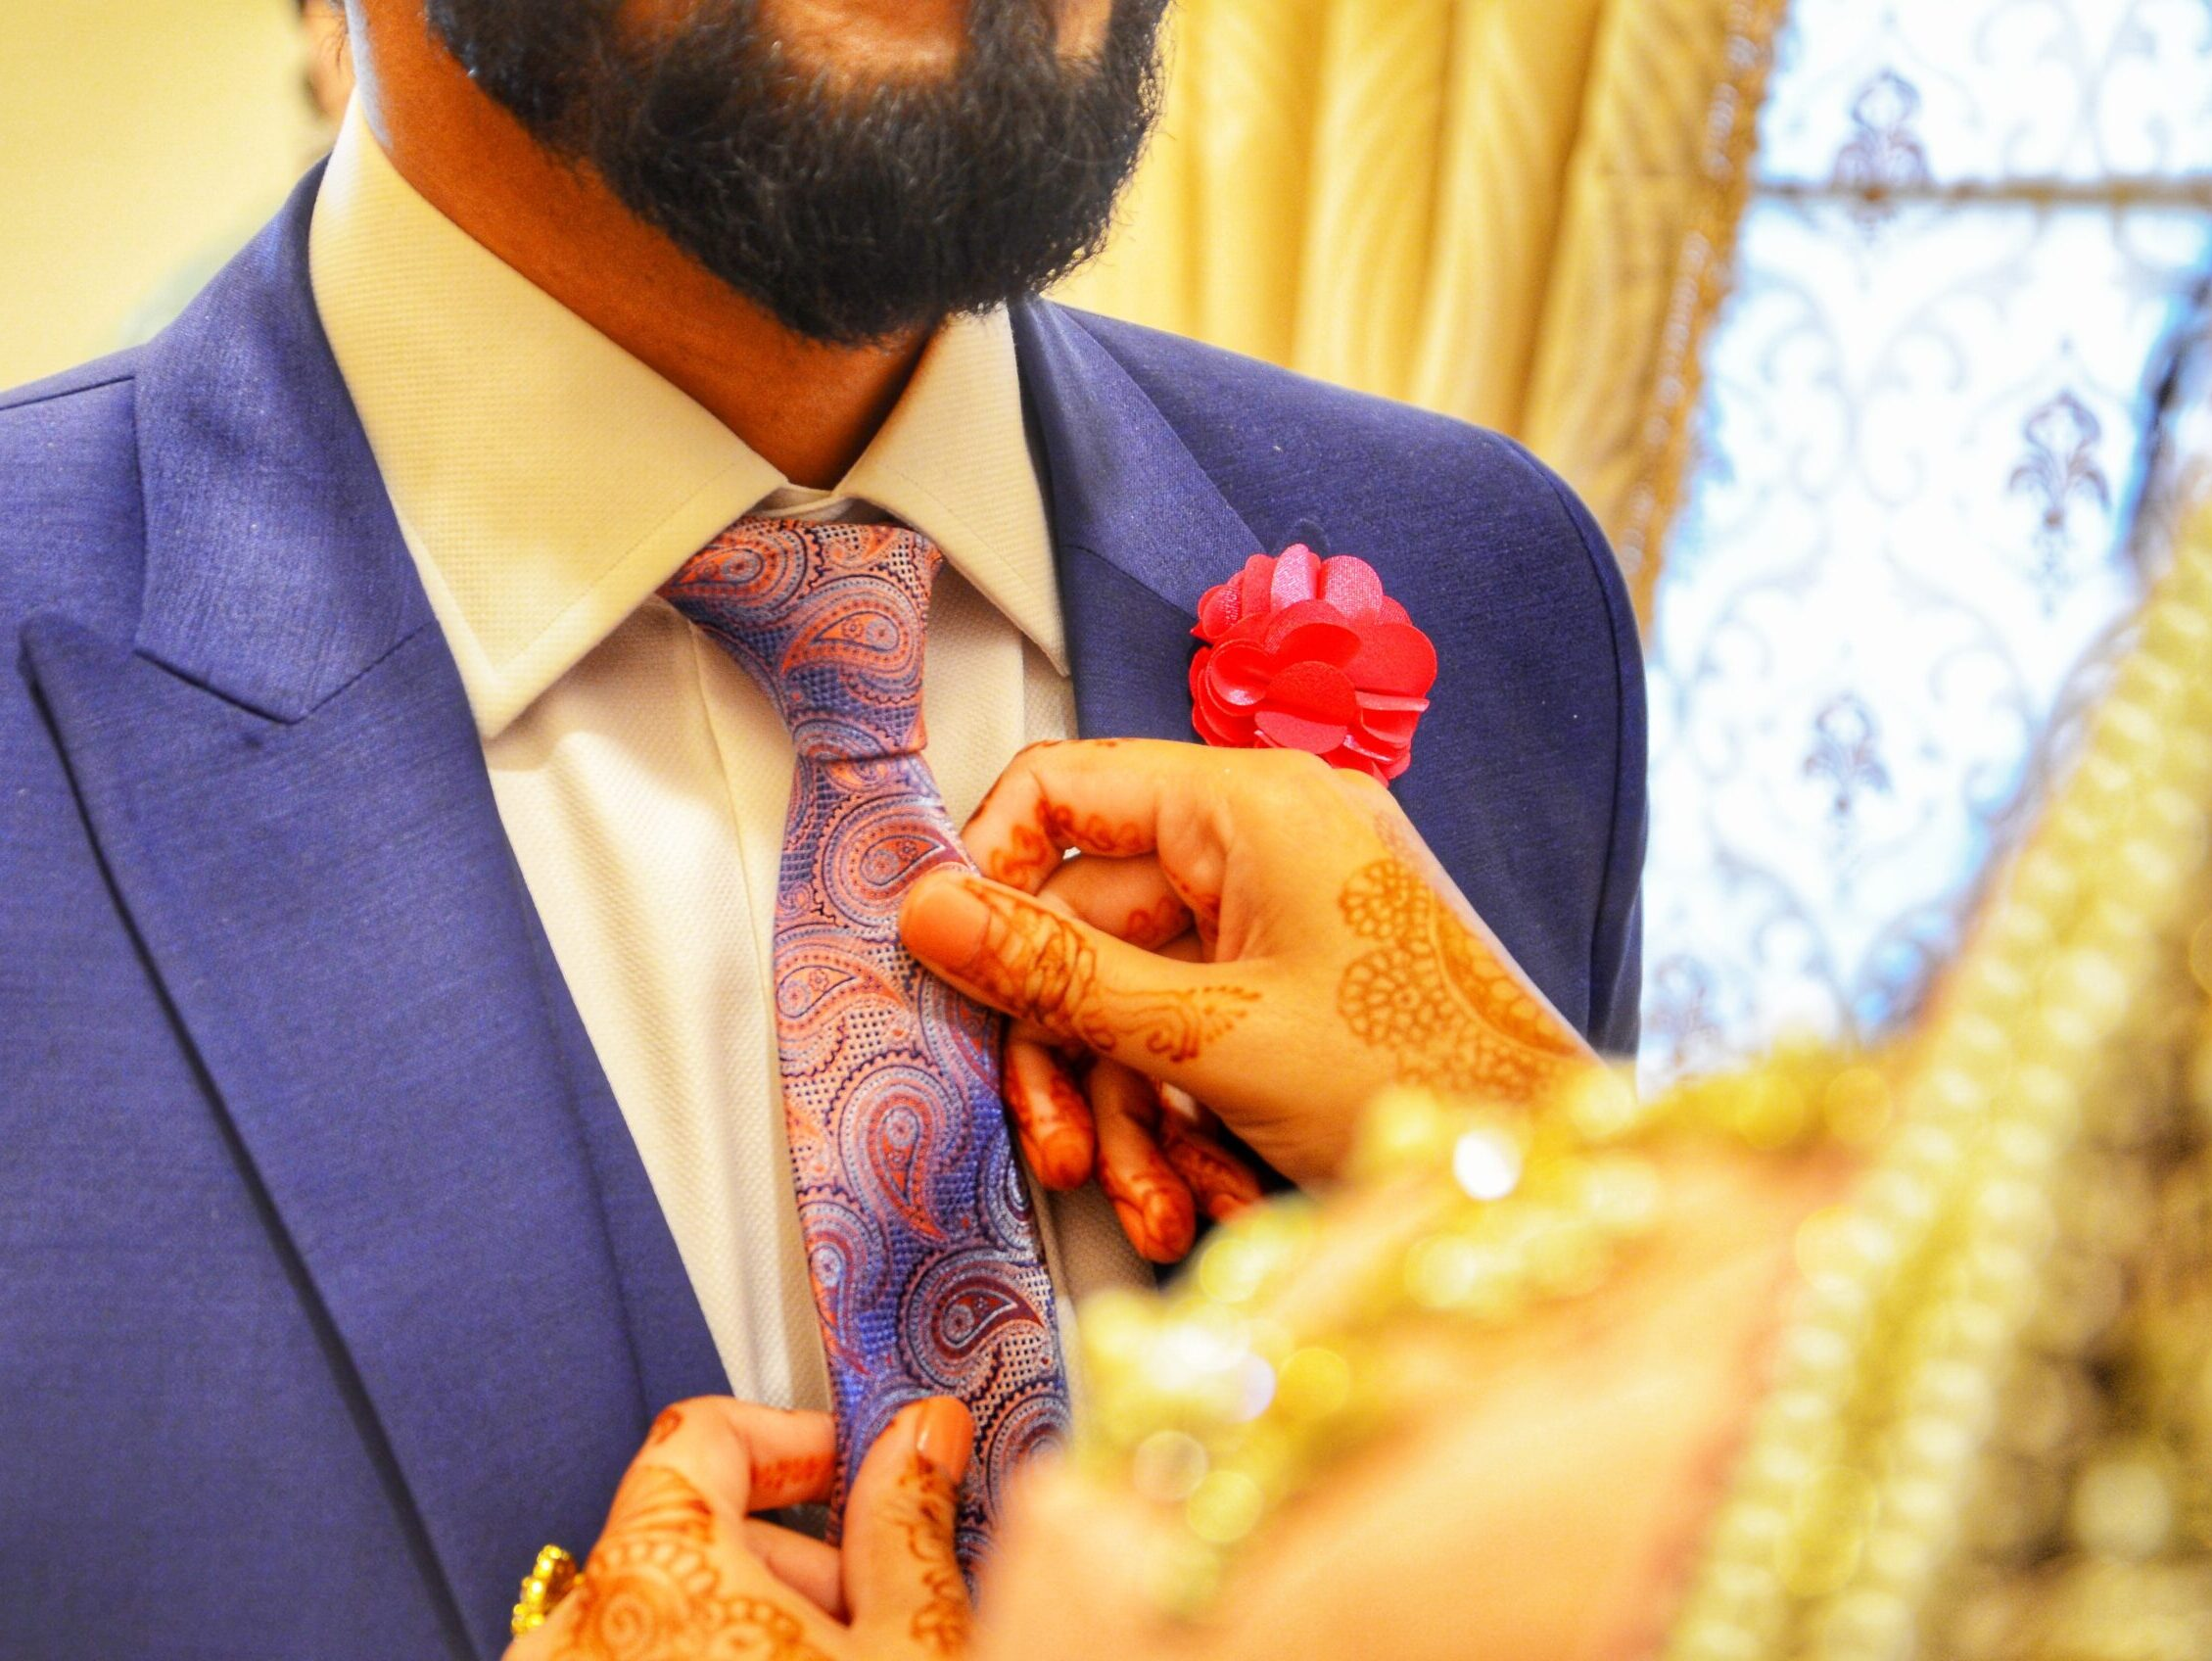 person fixing necktie of another man